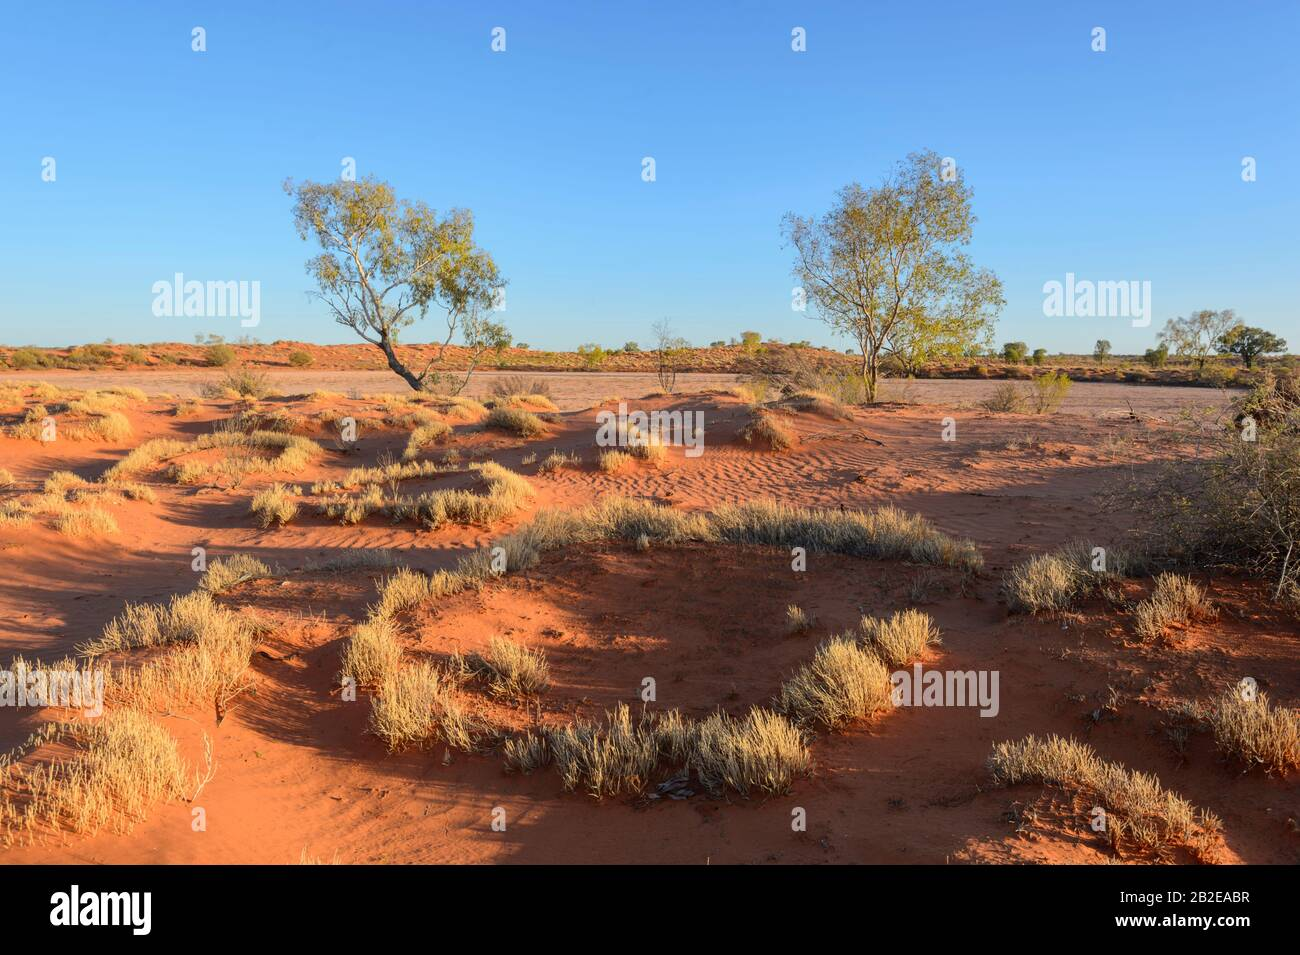 Circular spinifex growing in the Outback near Alice Springs, Northern Territory, NT, Australia Stock Photo